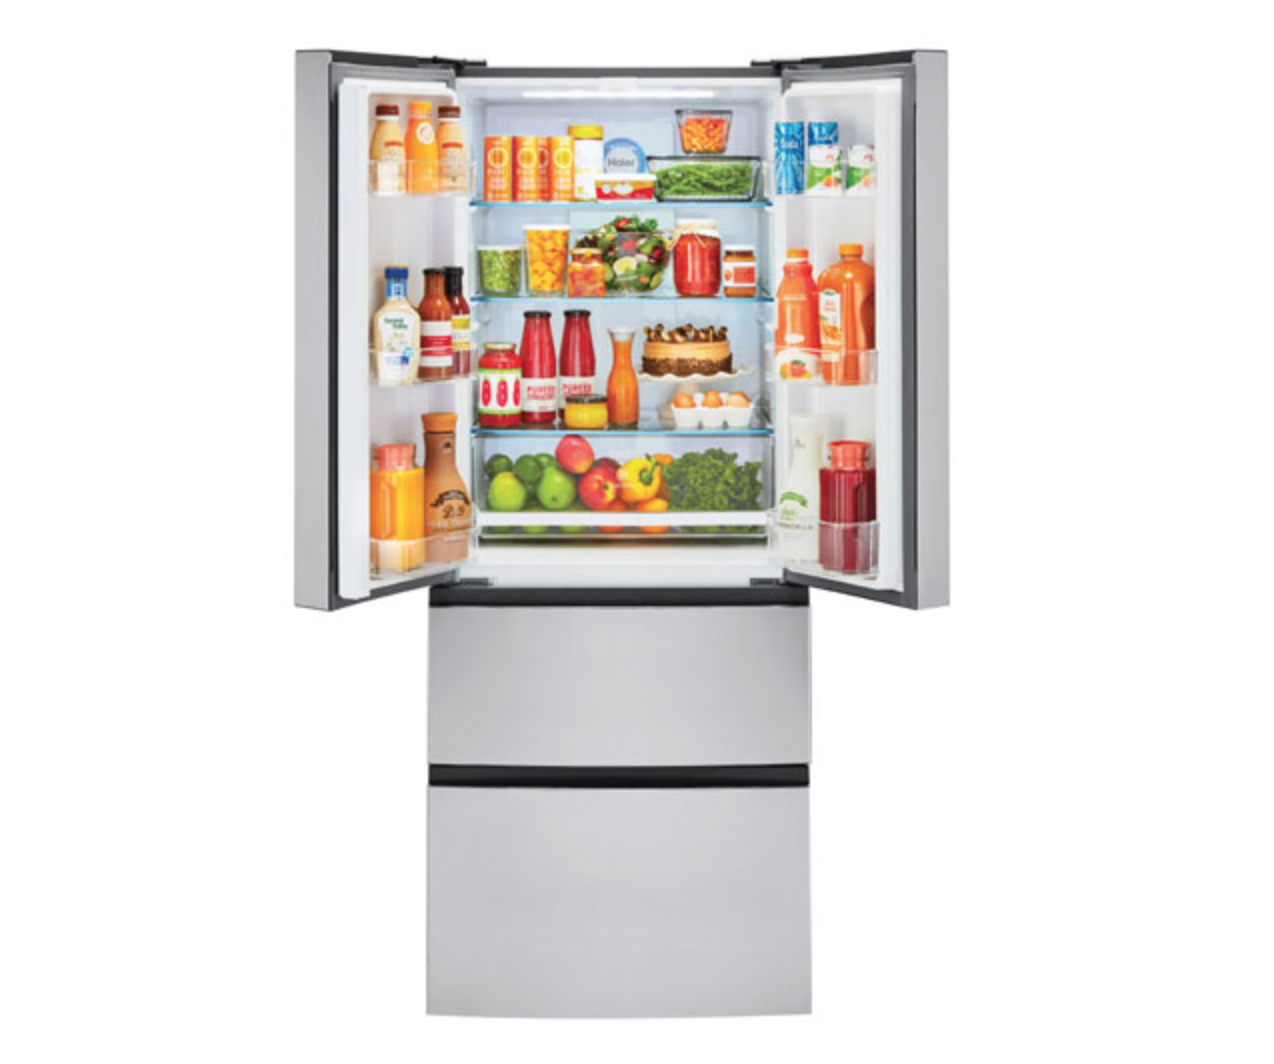 image of a Haier French door refrigerator, open to show storage space